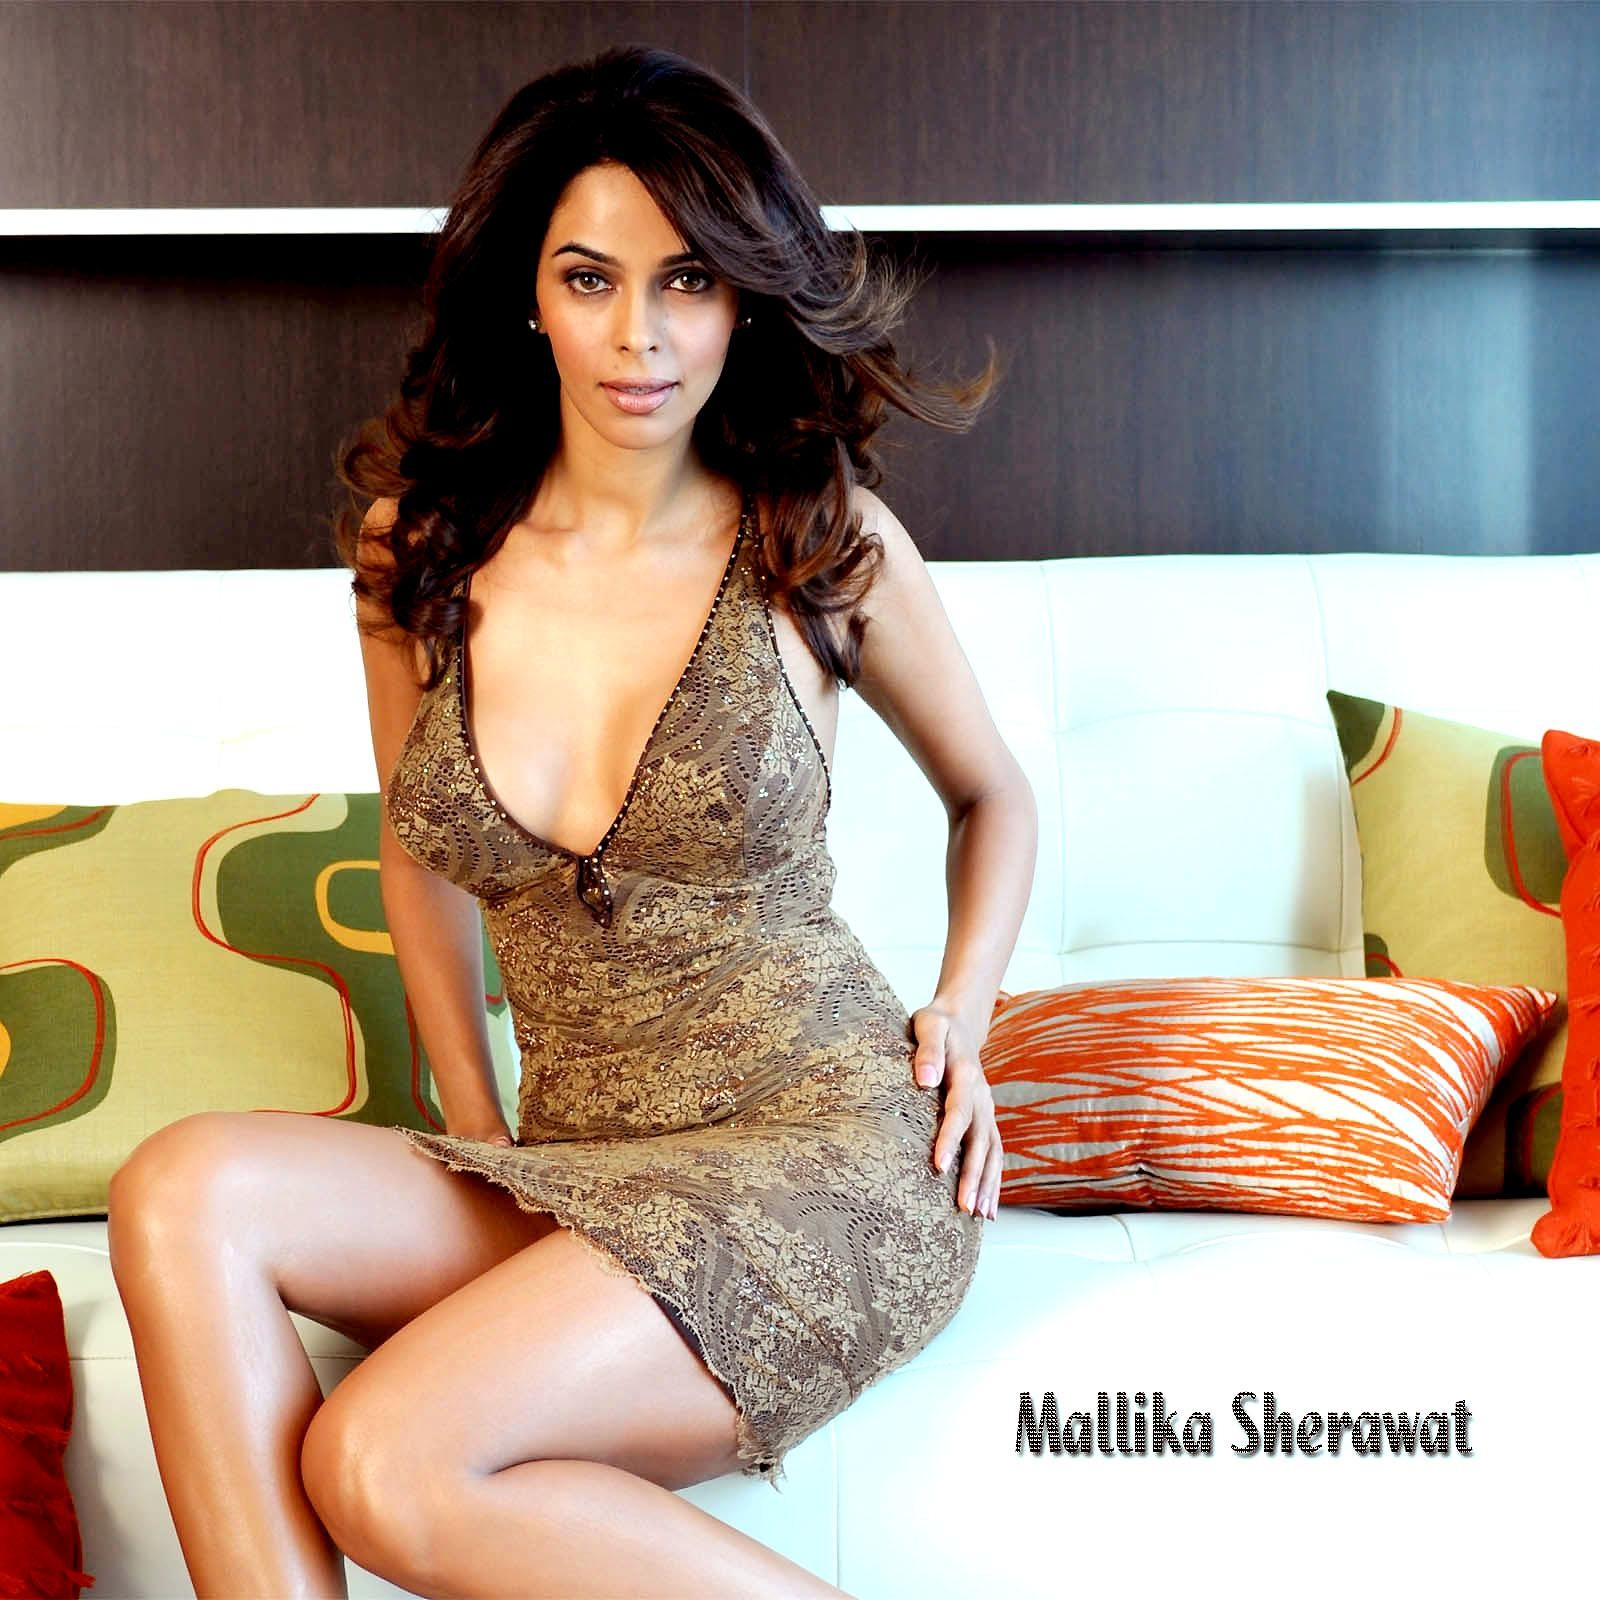 hd wallpaper of malika sherawat | city wallpapers